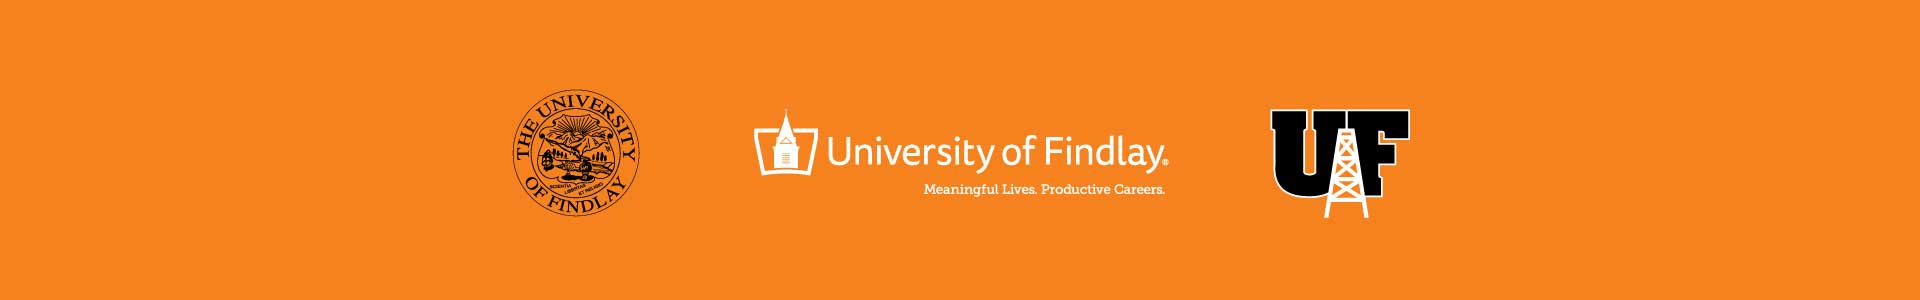 Brand Guidelines for the University of Findlay